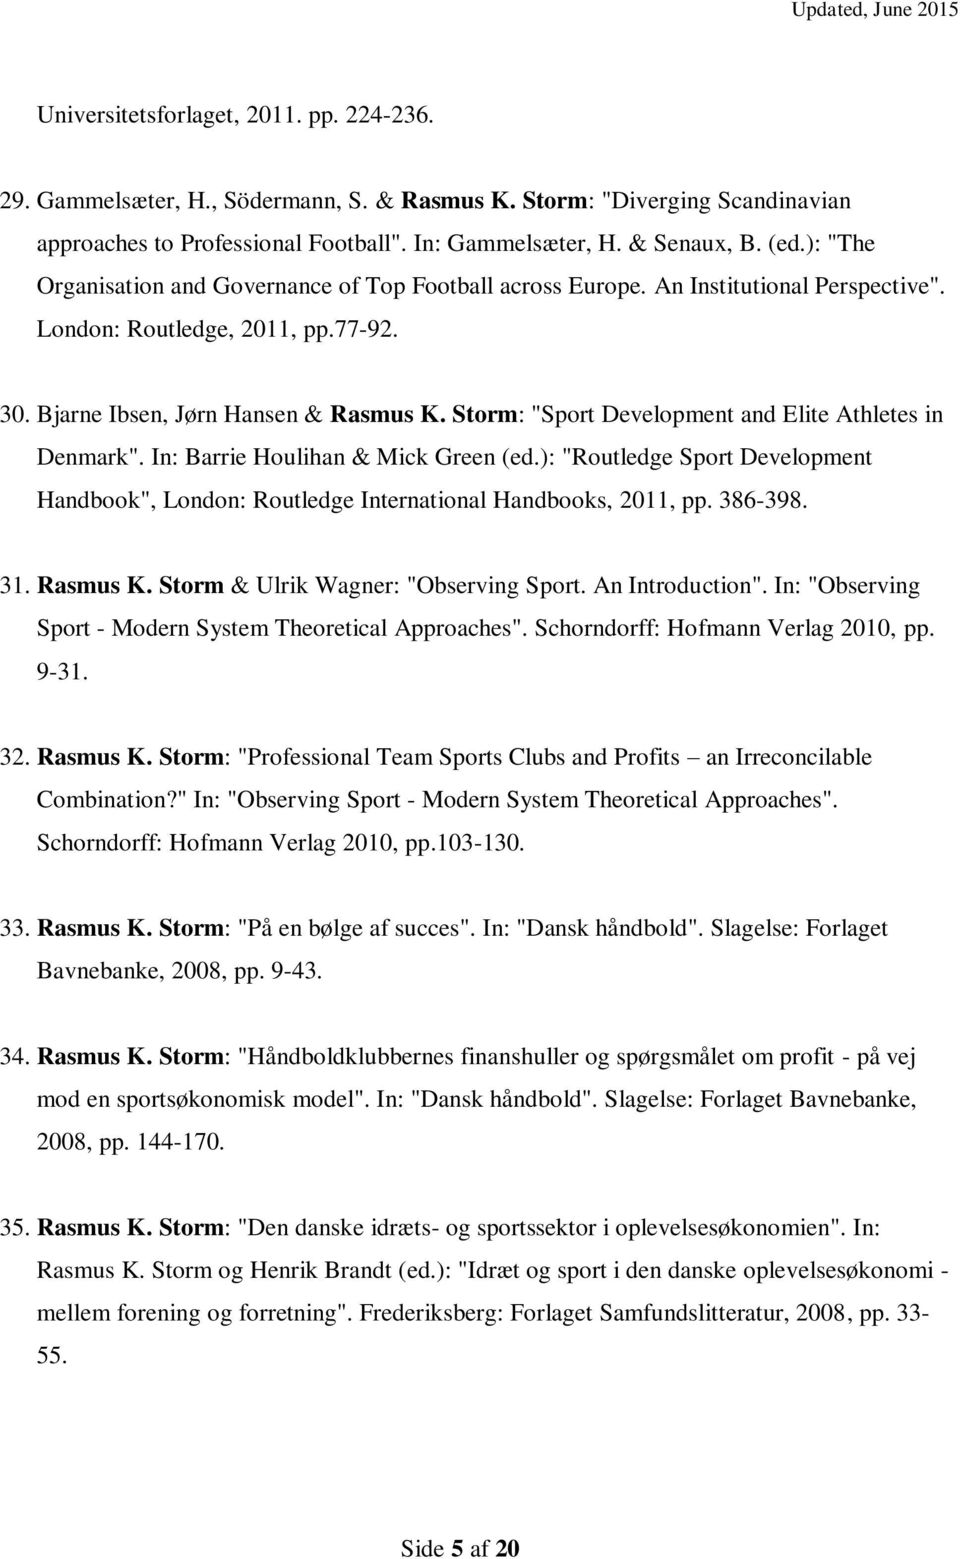 "Storm: ""Sport Development and Elite Athletes in Denmark"". In: Barrie Houlihan & Mick Green (ed.): ""Routledge Sport Development Handbook"", London: Routledge International Handbooks, 2011, pp. 386-398."